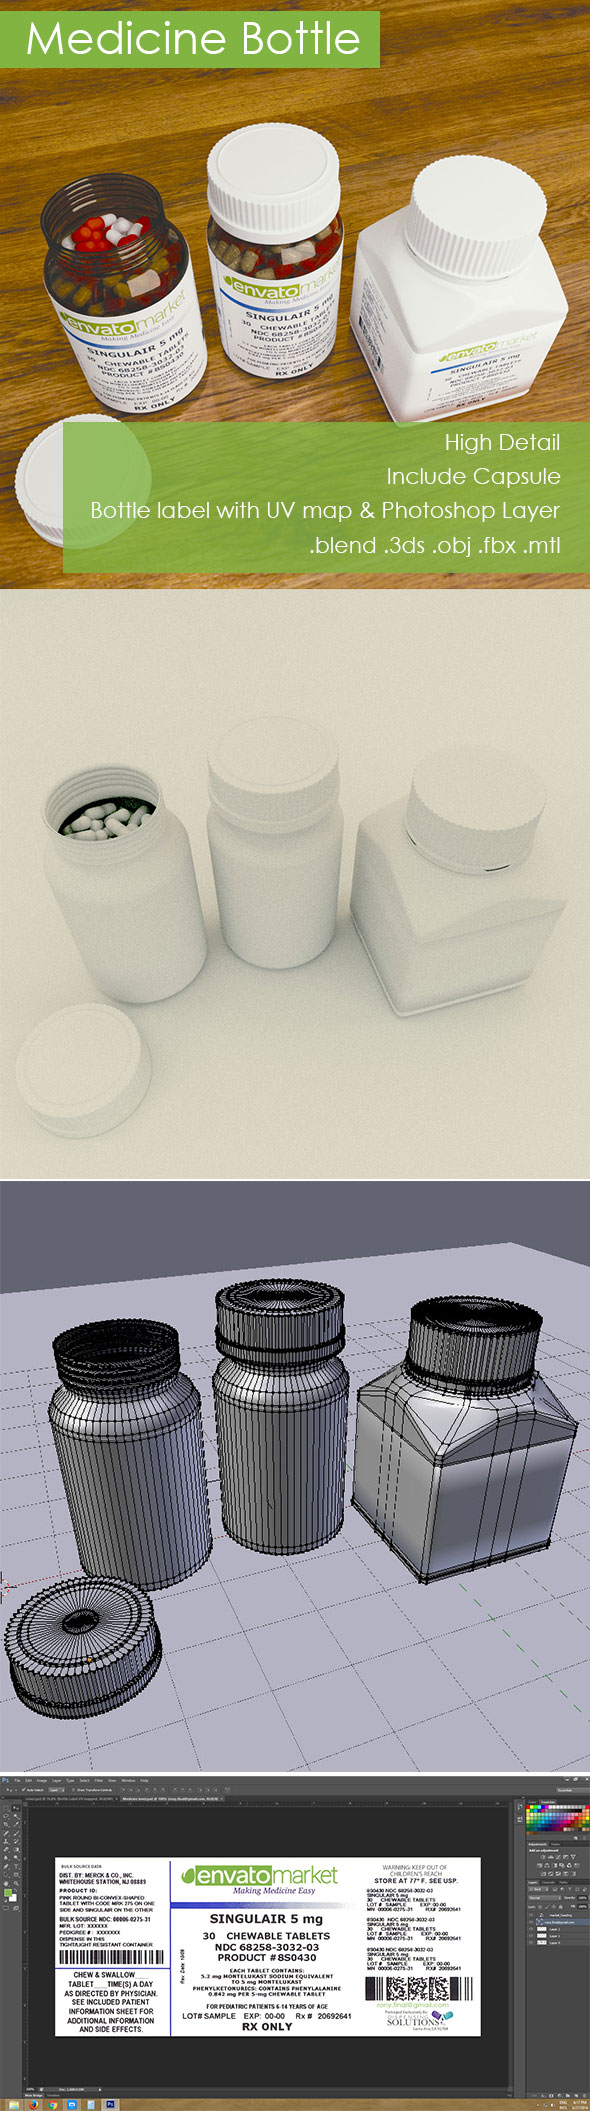 3D Medicine Bottle - 3DOcean Item for Sale